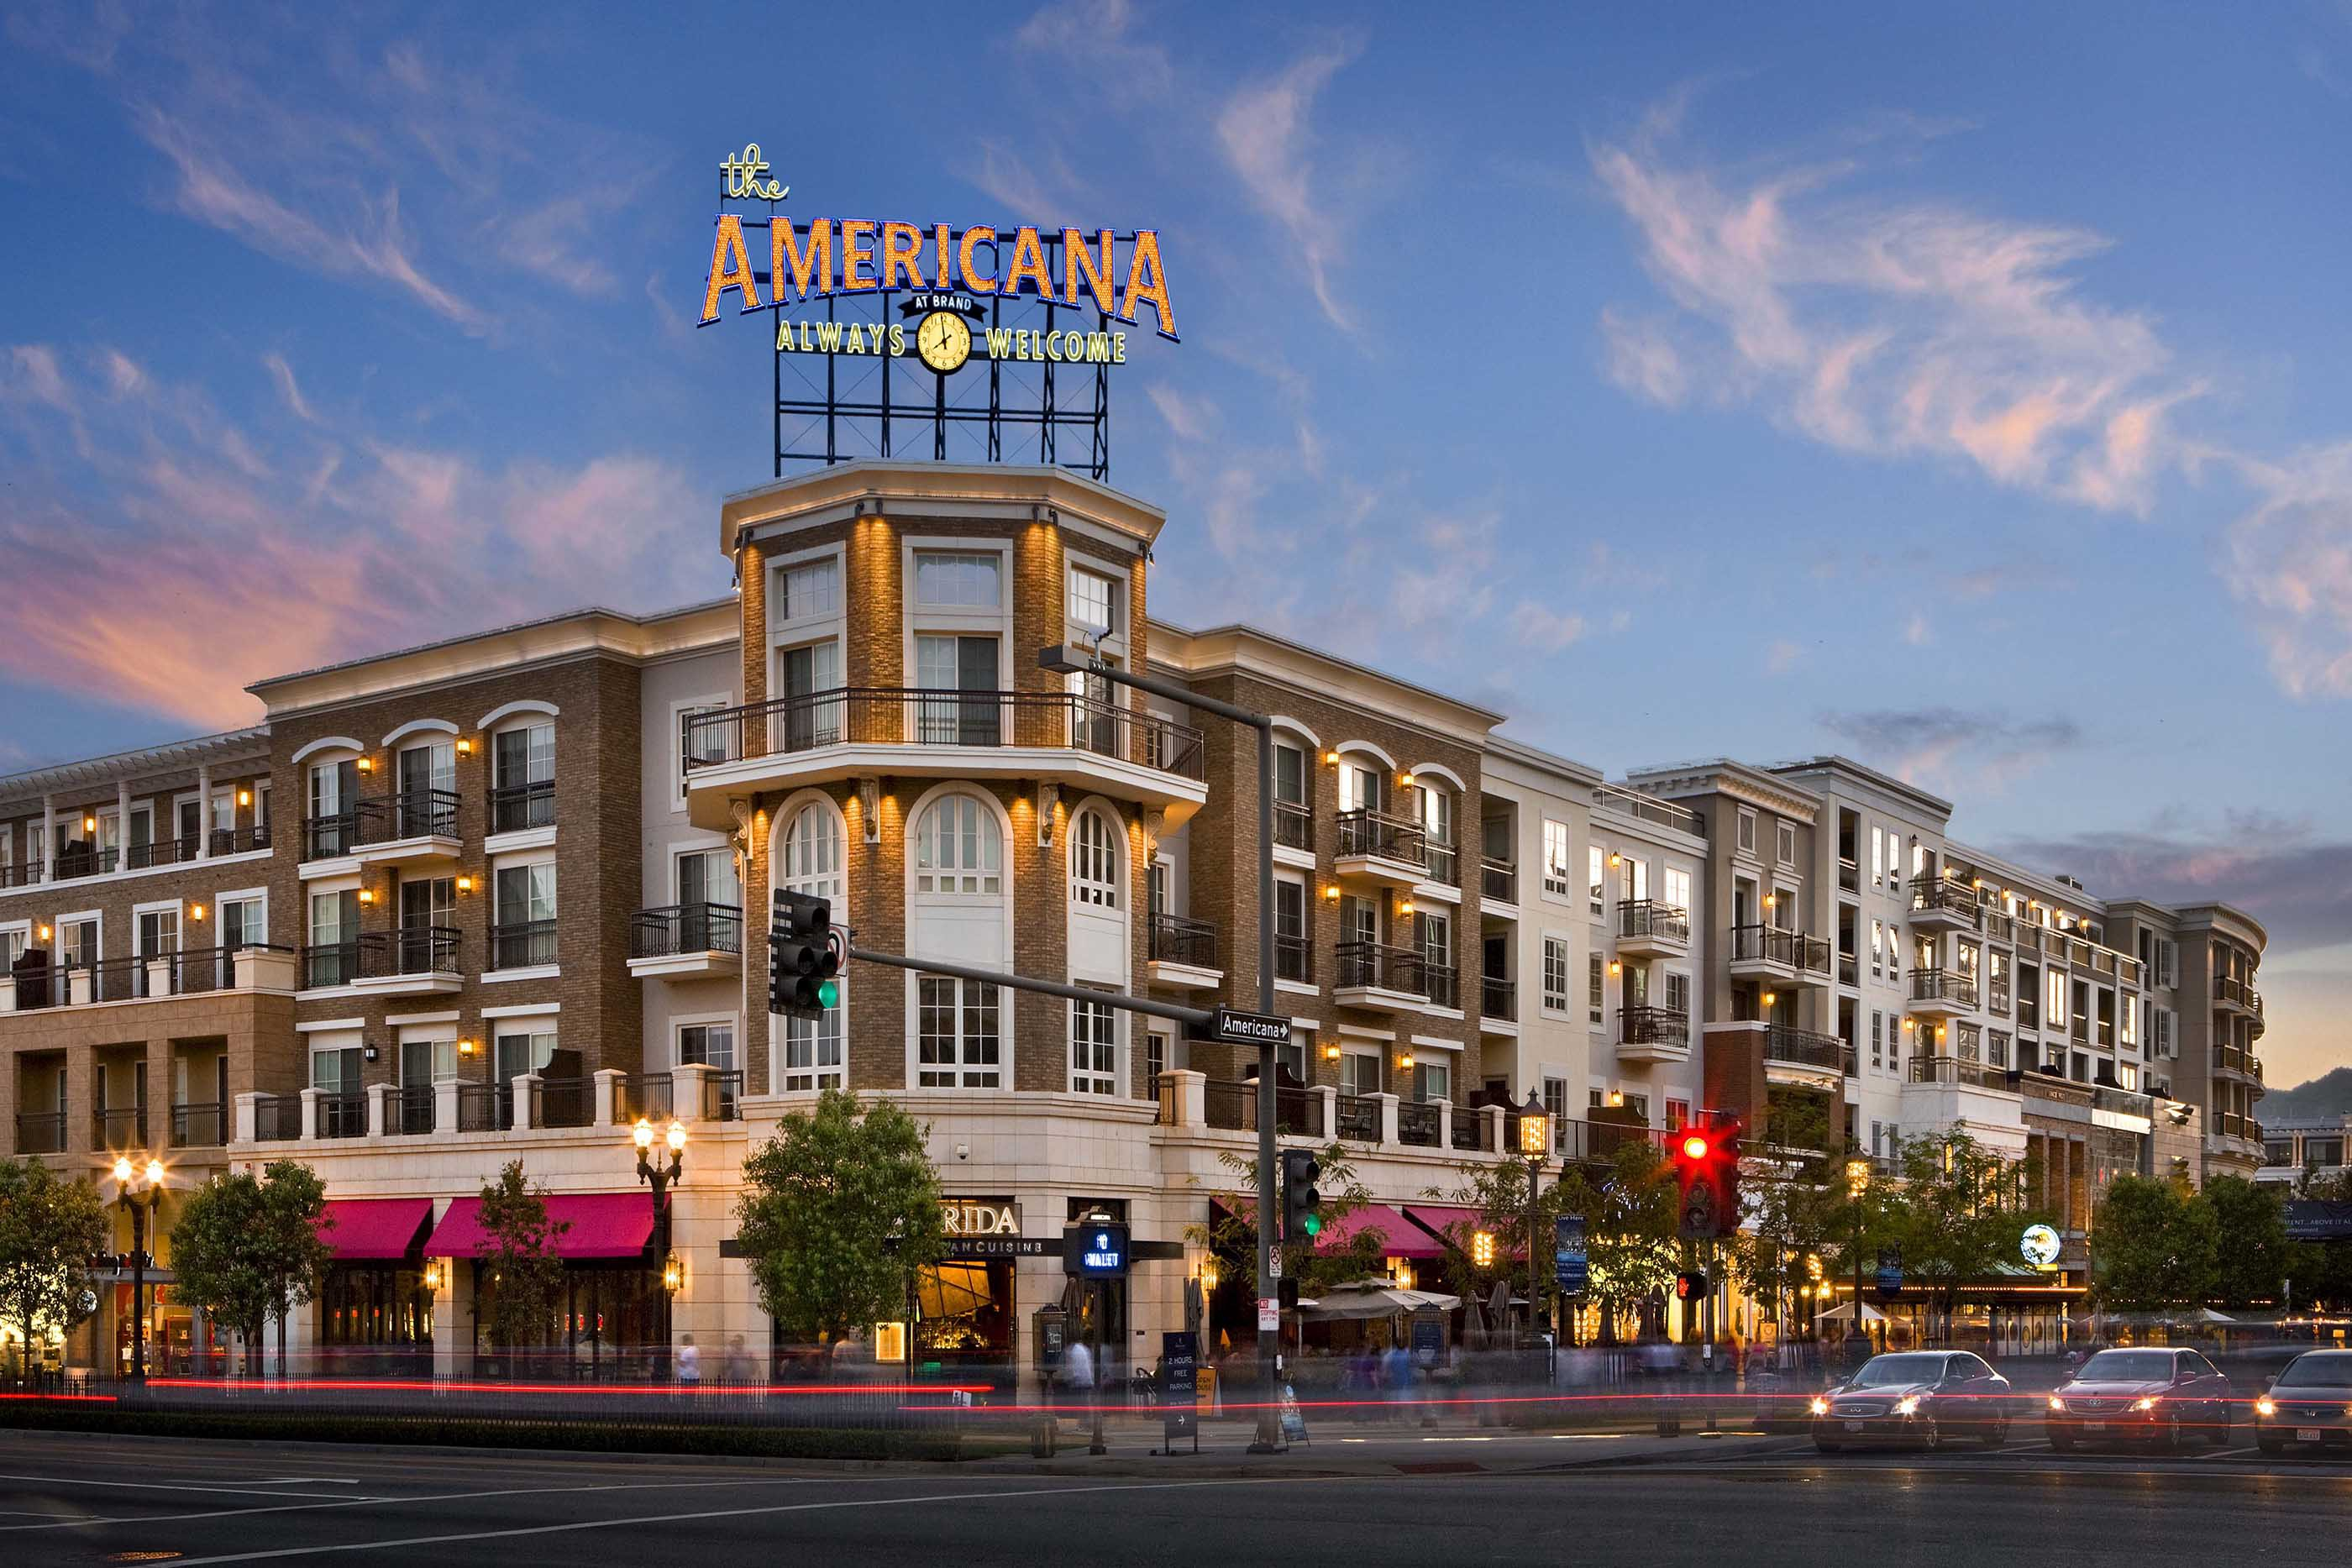 Americana At Brand >> There S Something About The Americana At Brand The Startup Medium